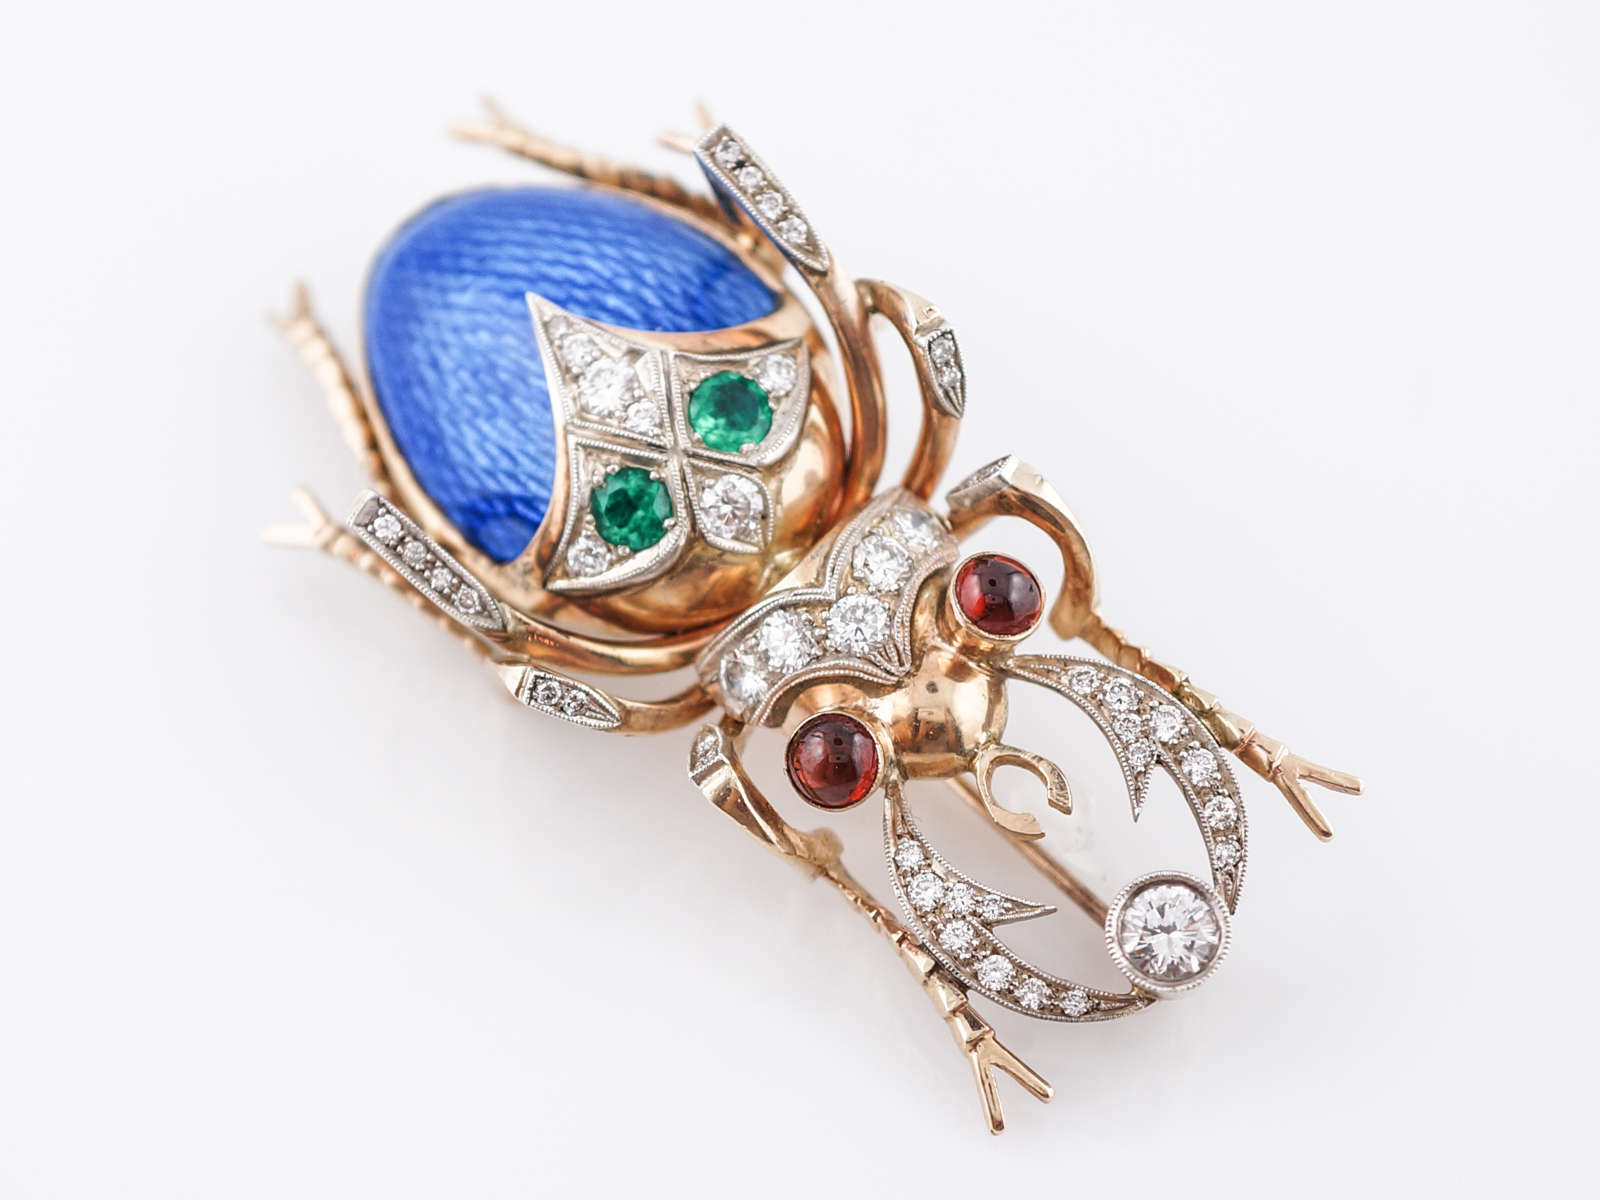 Beetle Pin Modern 1.09 Round Brilliant Cut Diamonds in 14k Yellow Gold-3